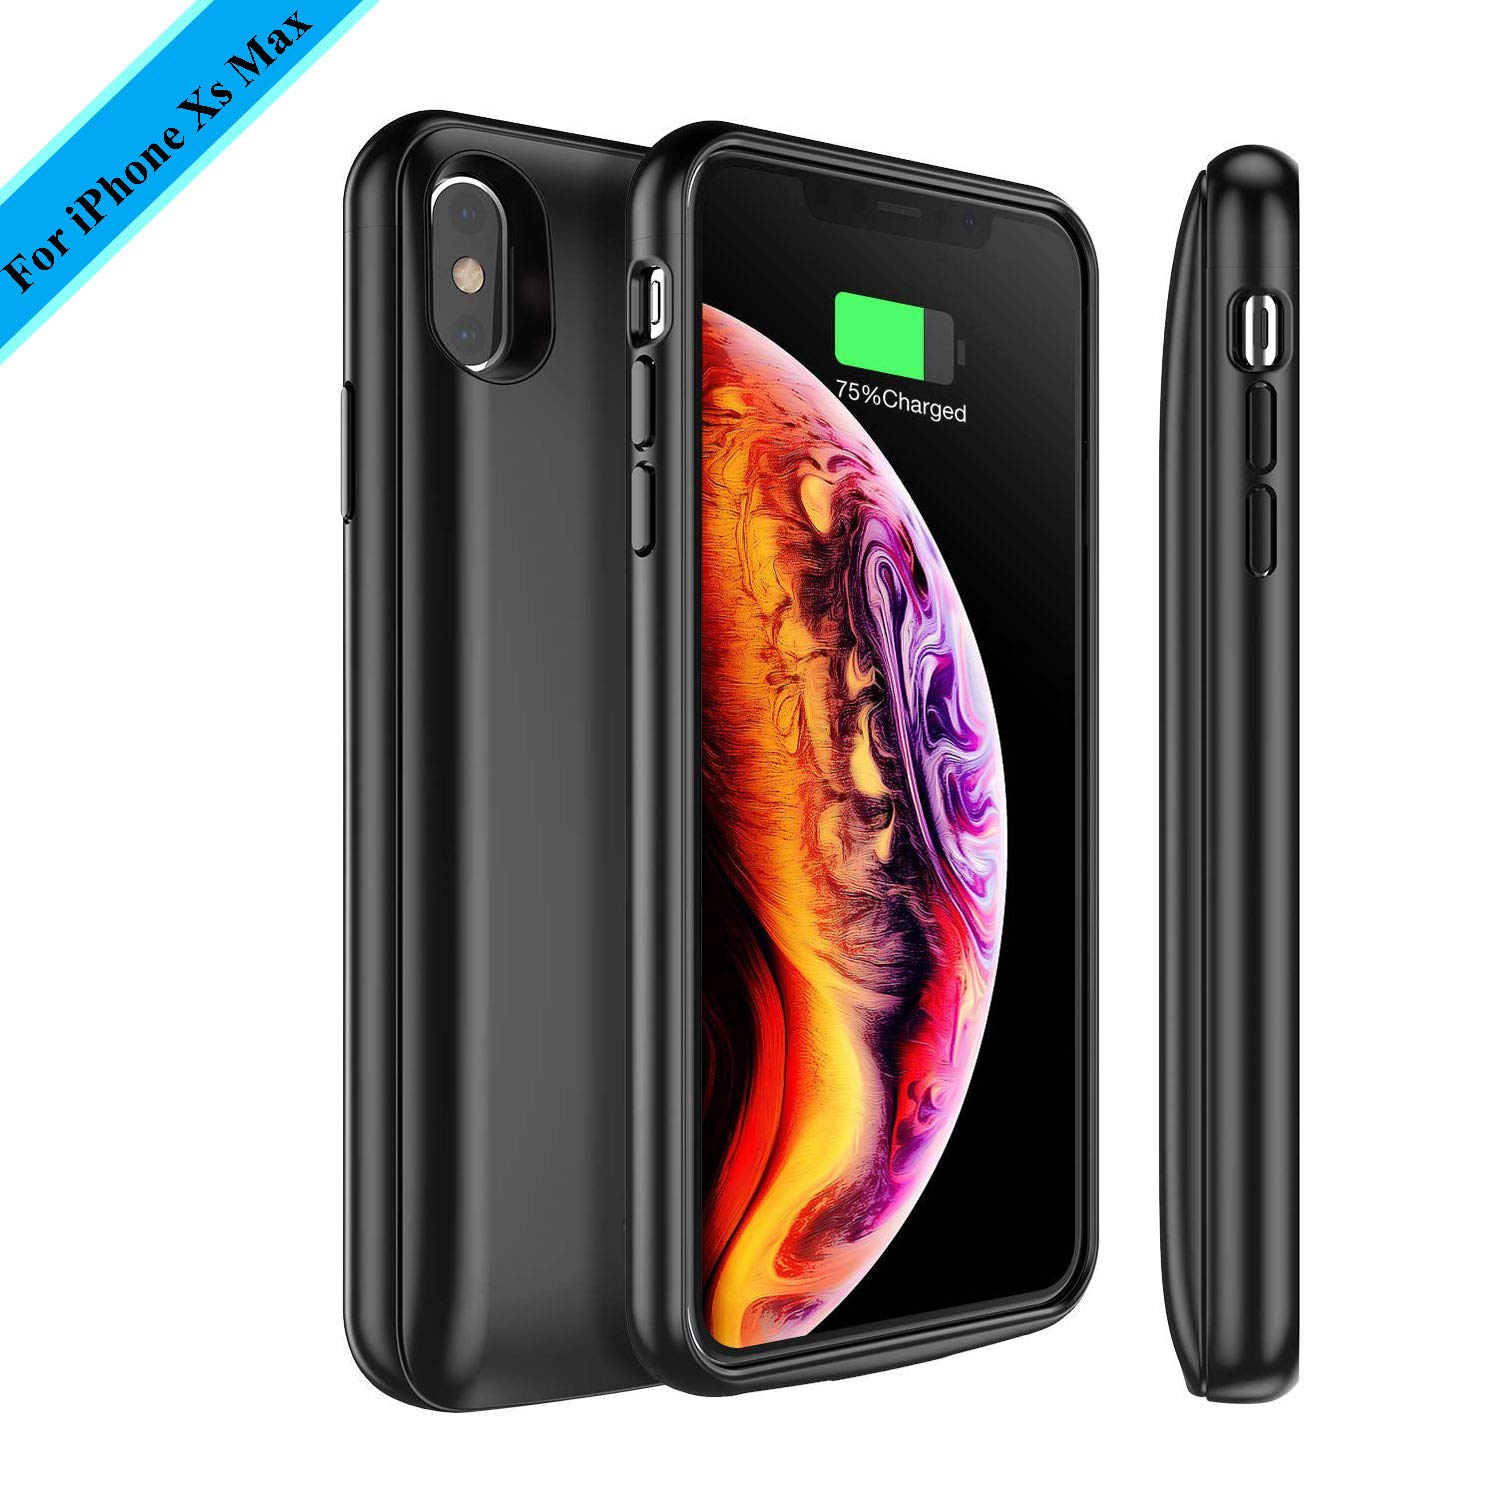 Battery Case Compatible with iPhone Xs Max, 5000mAh Rechargeable External Portable Battery Charger Pack Slim Extended Power Bank Backup Charging Protective Case for iPhone Xs Max 6.5 inch (Black) XBC Tech